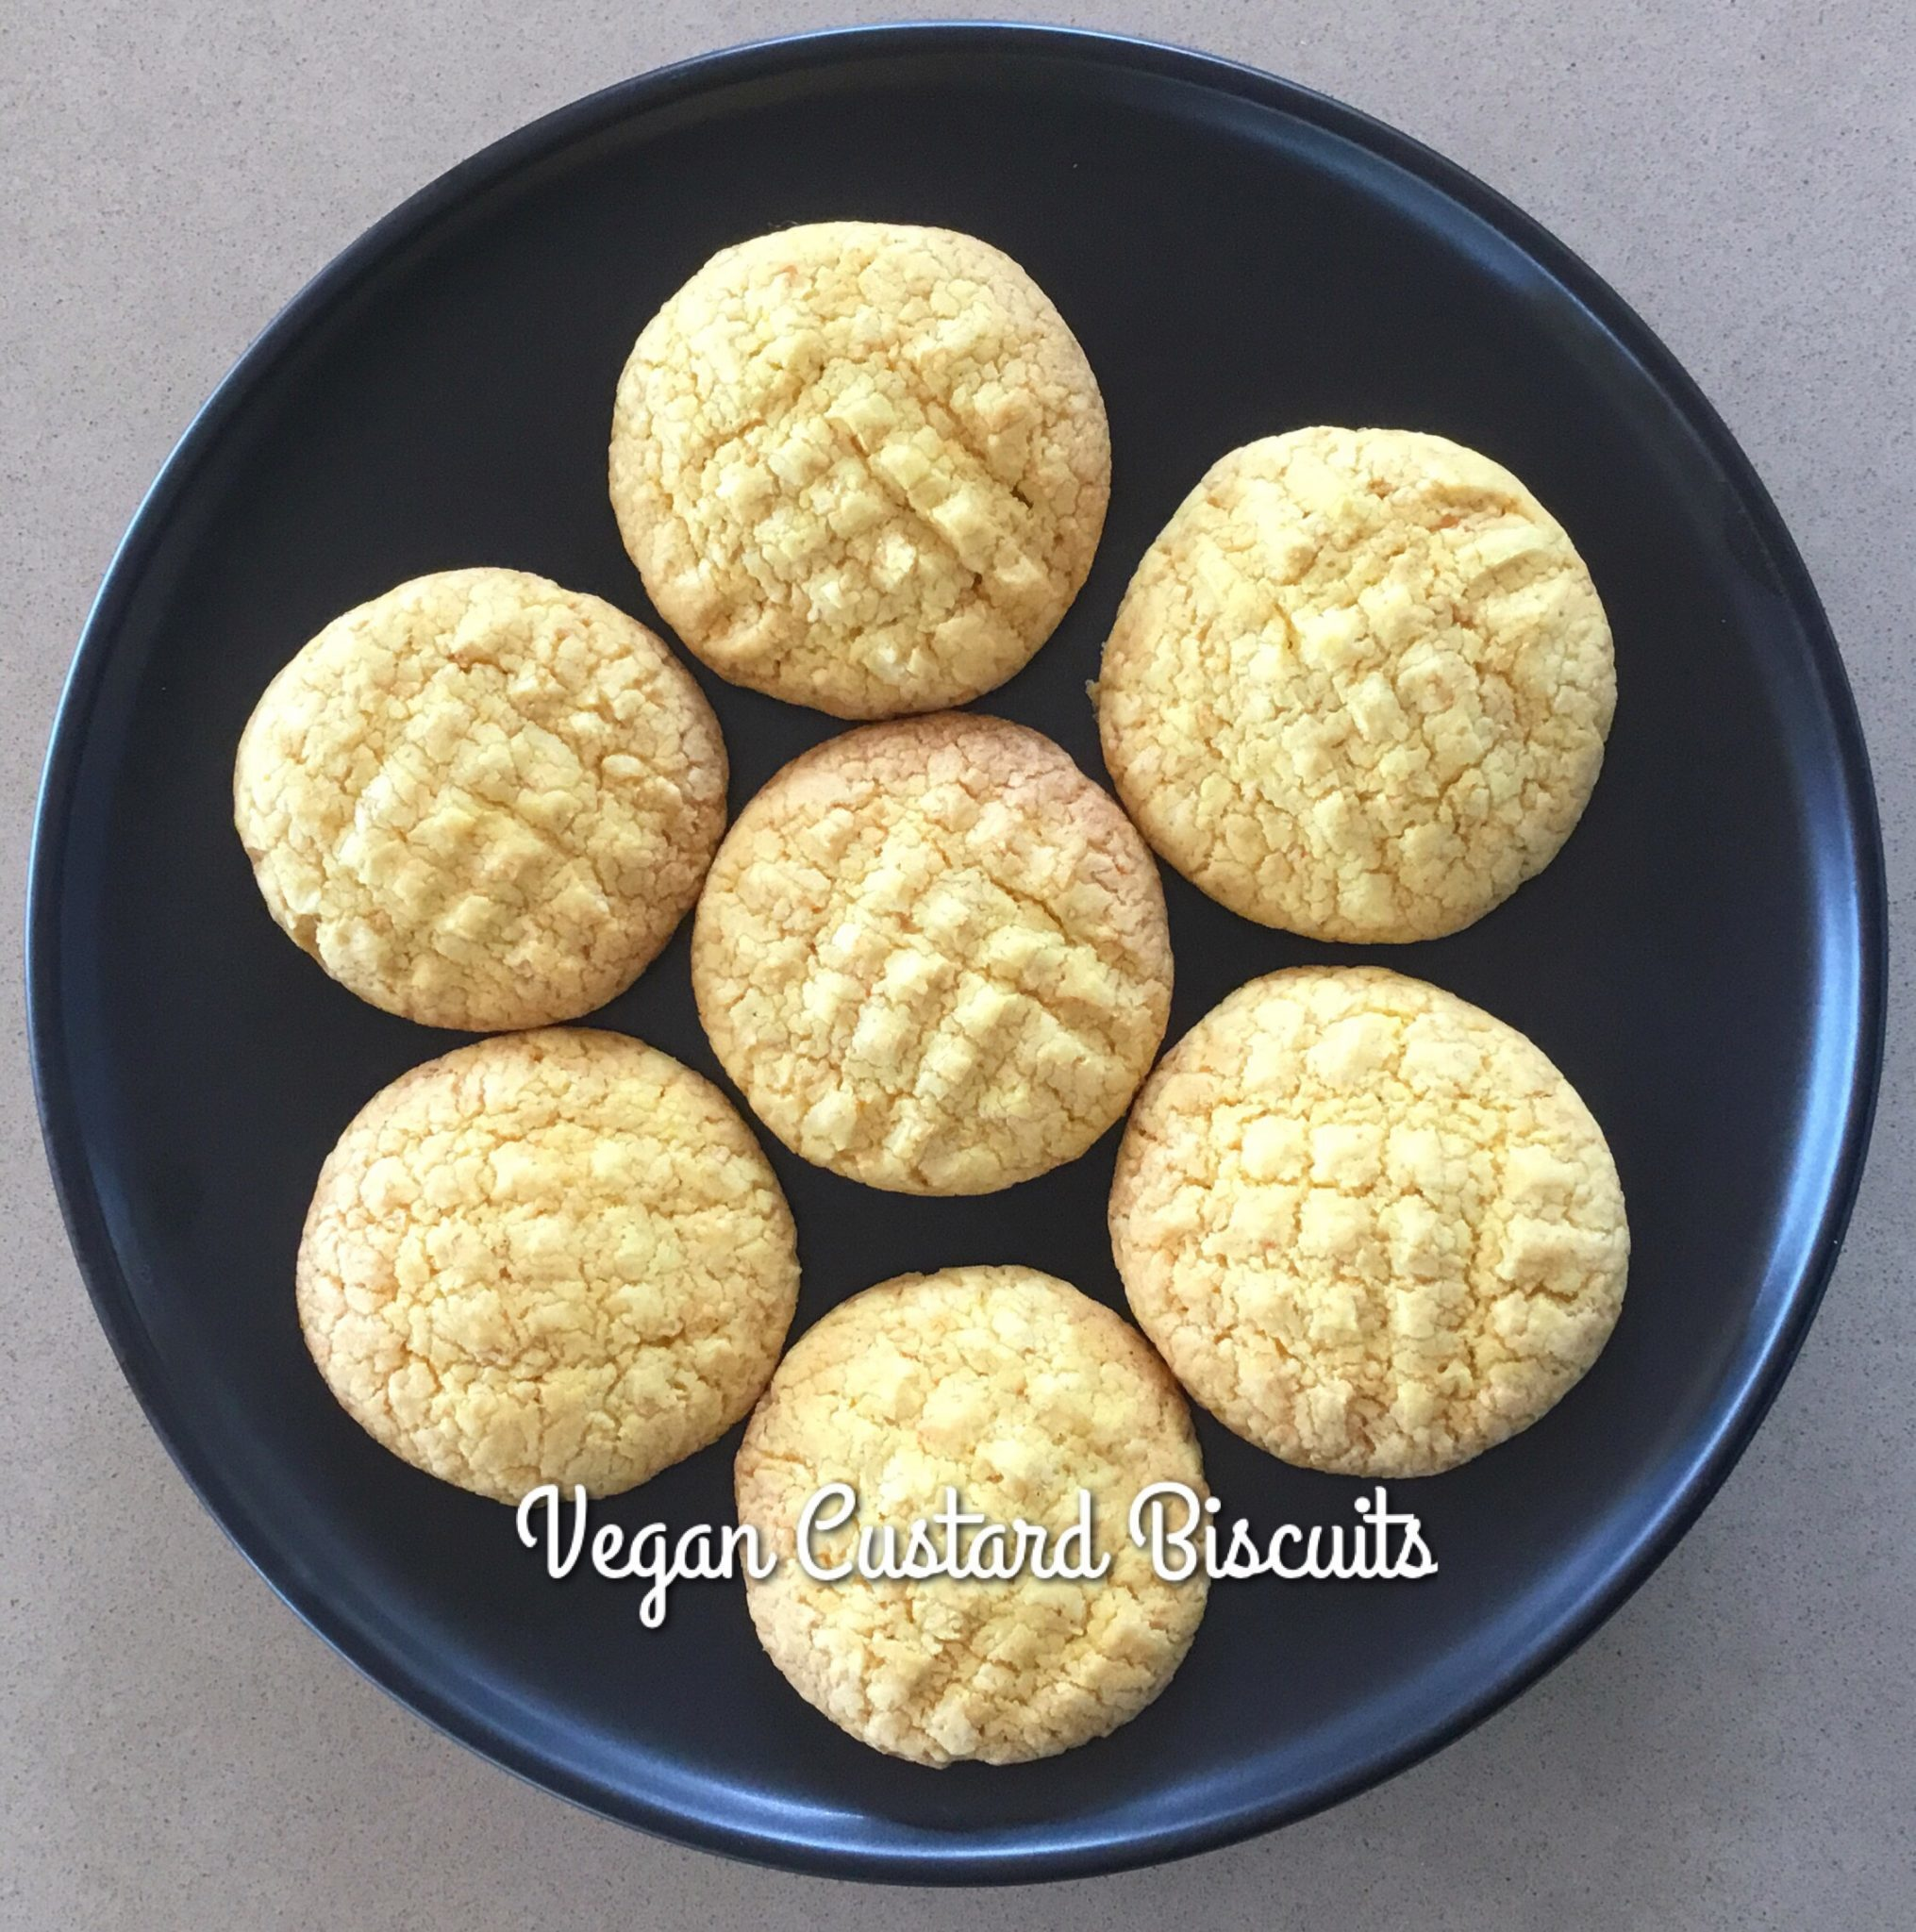 Custard Biscuits (Vegan & Sugar Free)